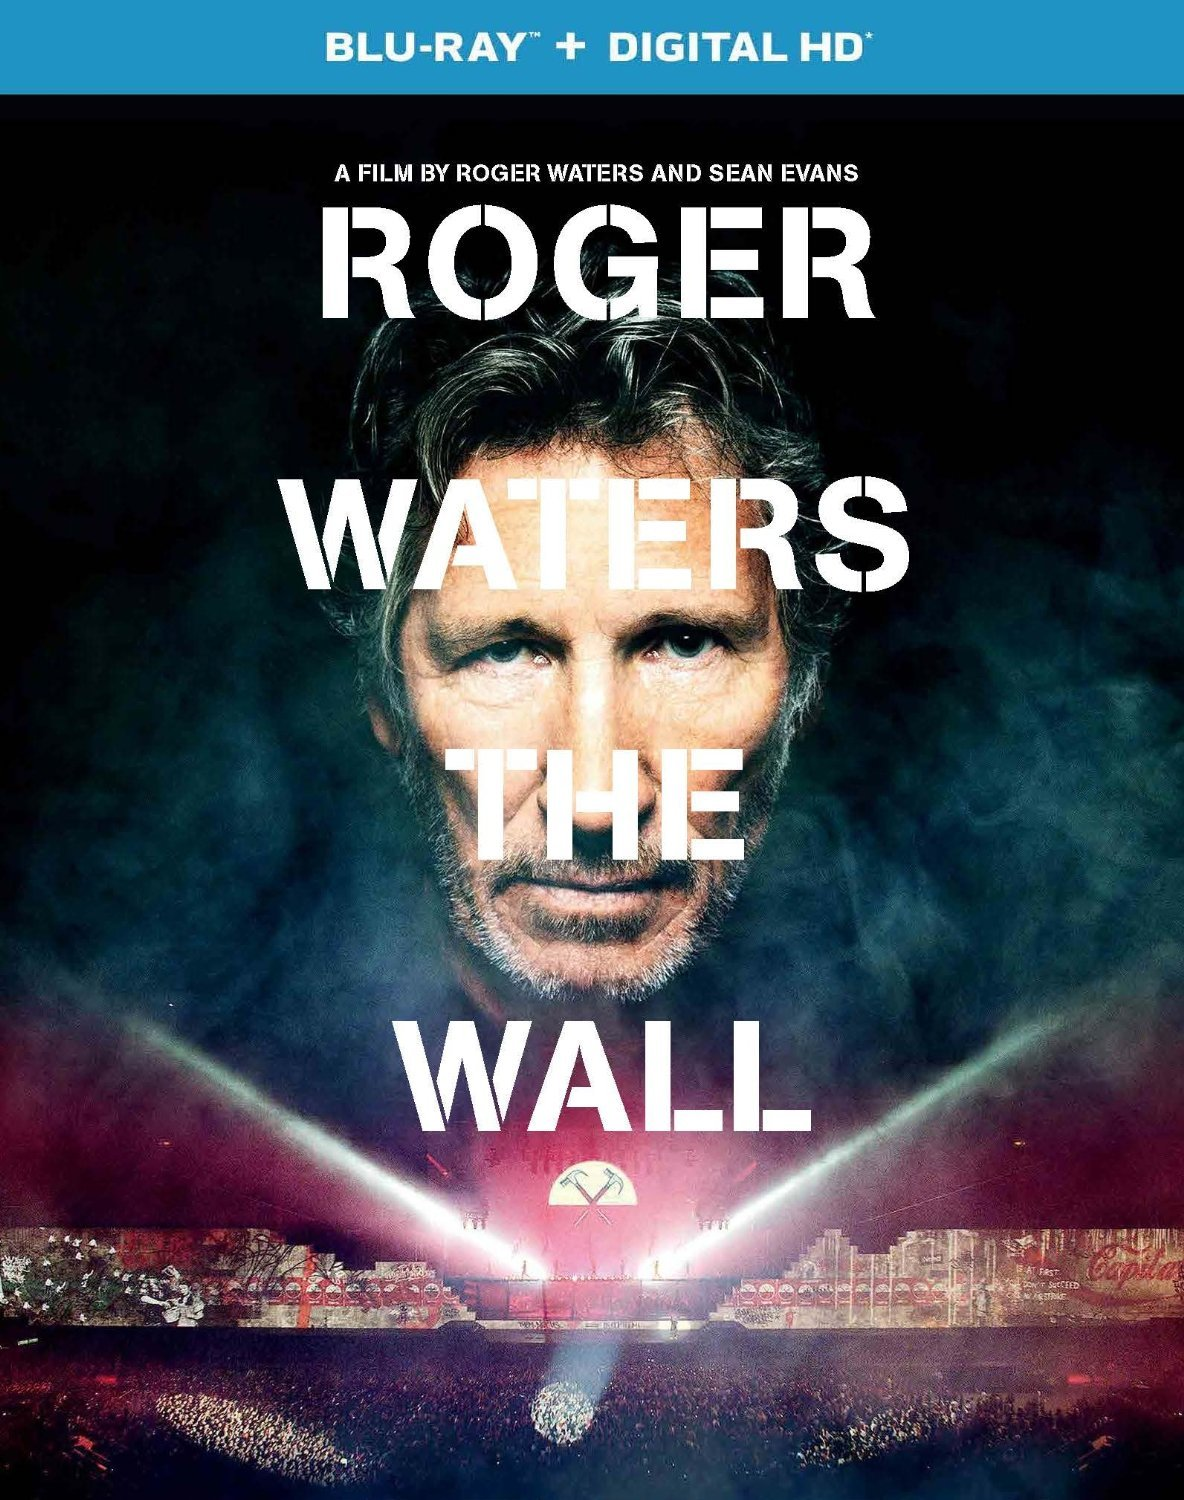 Roger Waters The Wall Blu-ray Review